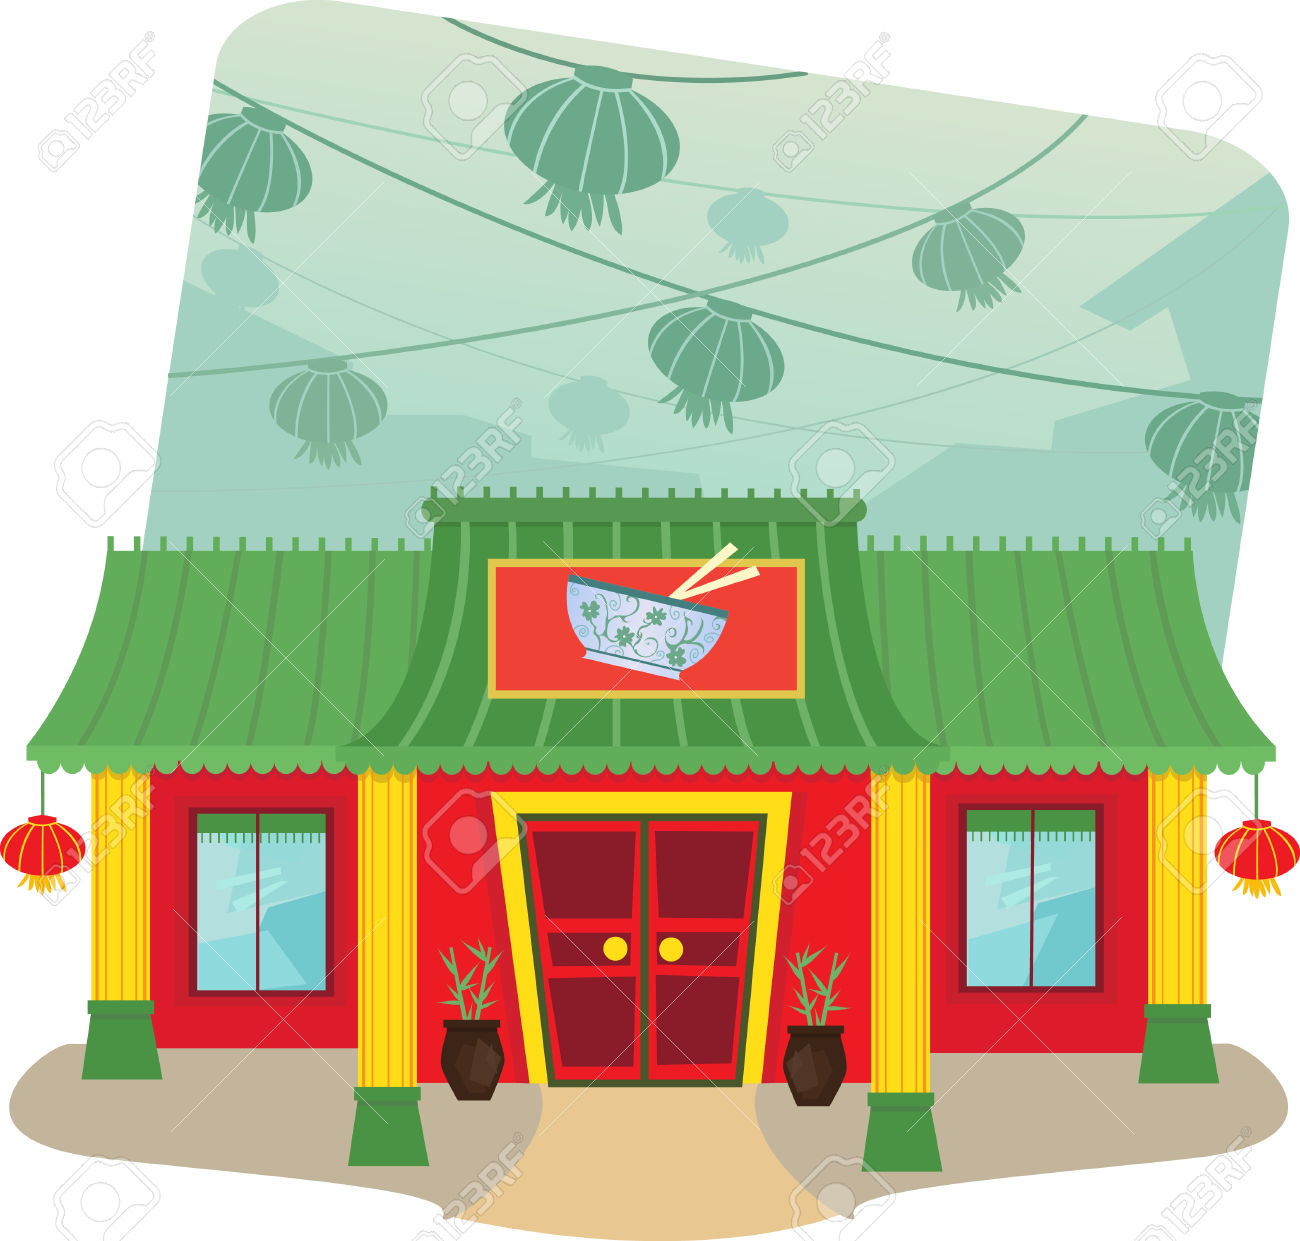 6,598 Chinese Restaurant Stock Illustrations, Cliparts And Royalty.